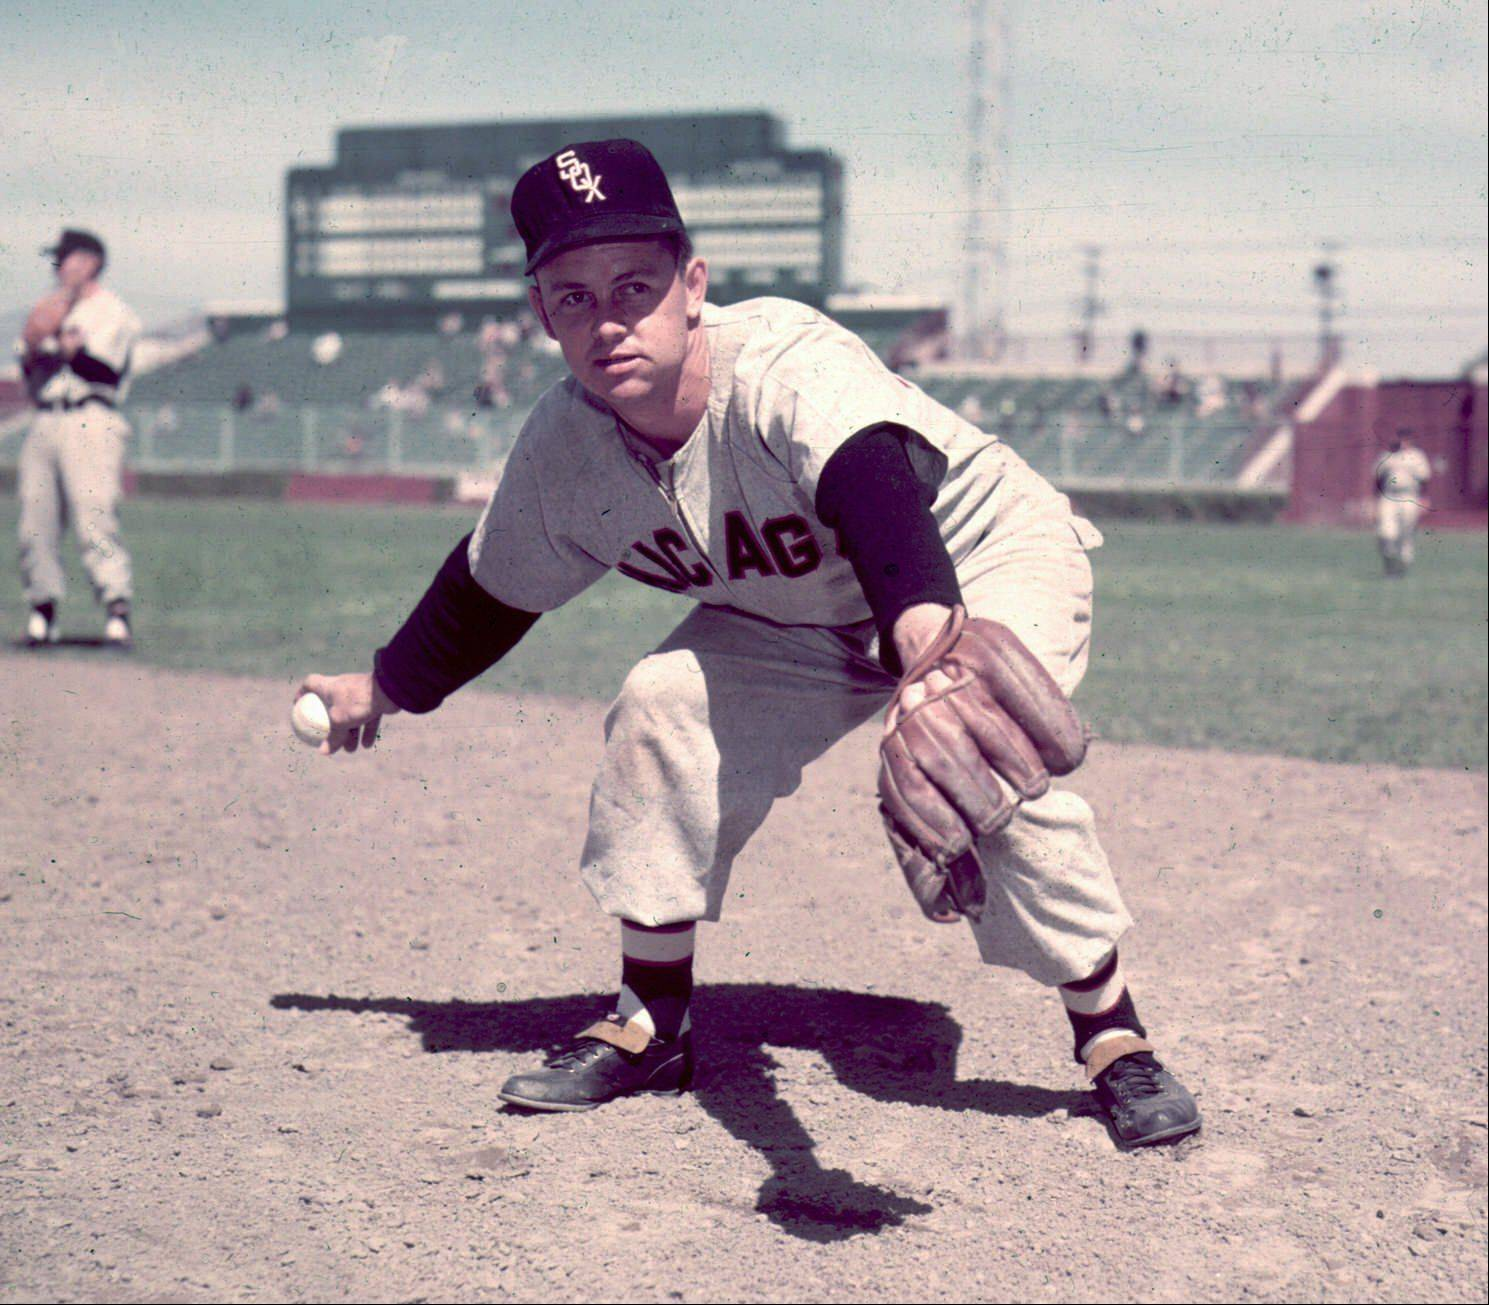 White Sox second baseman Nellie Fox, the MVP of the 1959 pennant winners, was inducted into the National Baseball Hall of Fame in 1997 and his charm and spitfire determination made him one of Editor John Lampinen's lifelong heroes.